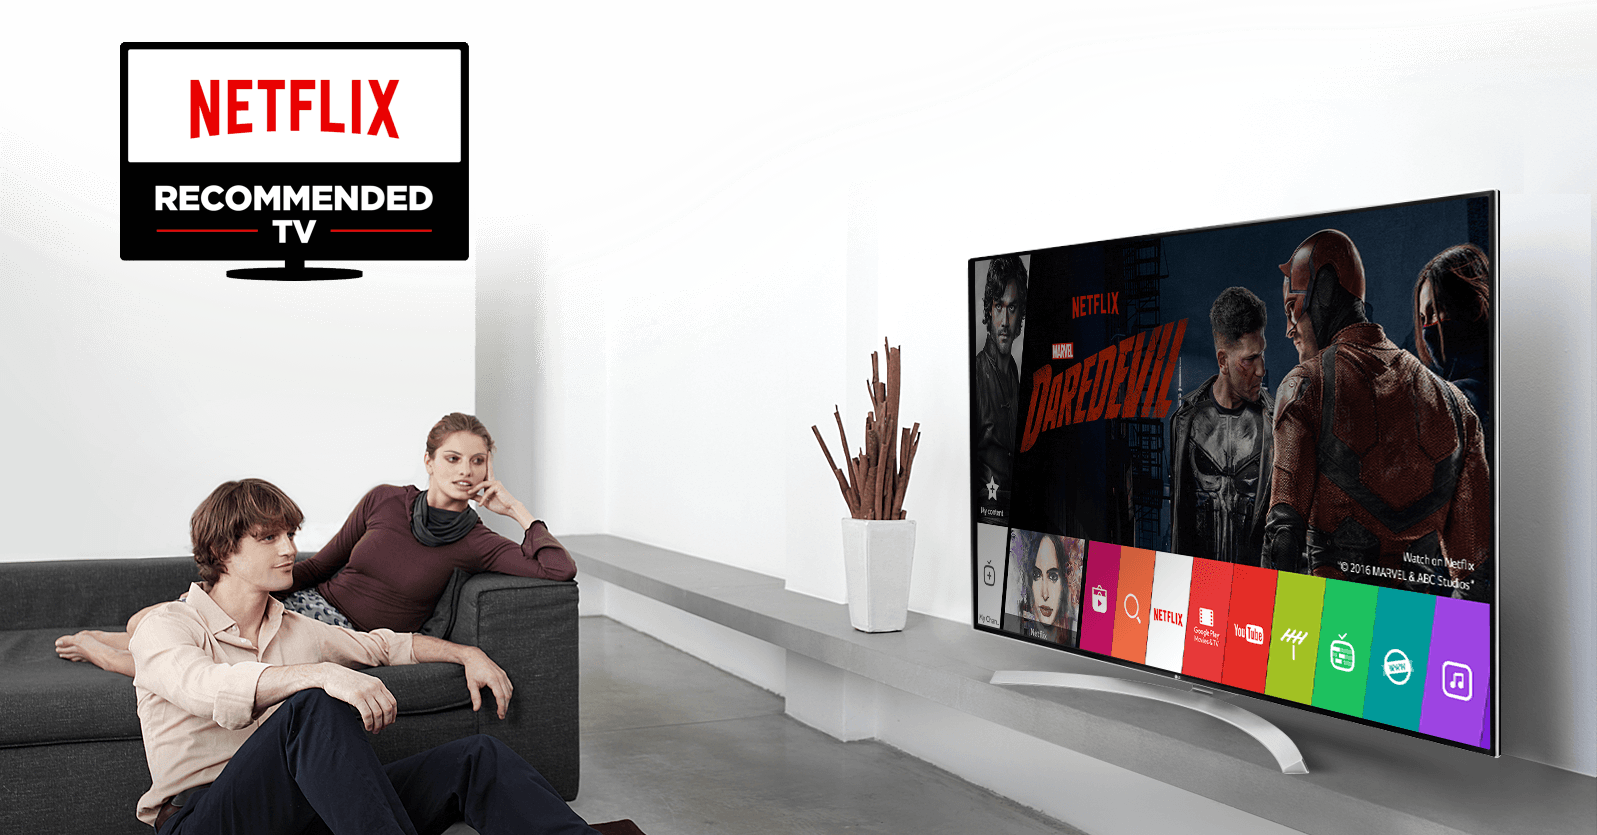 Netflix Recommended TV list